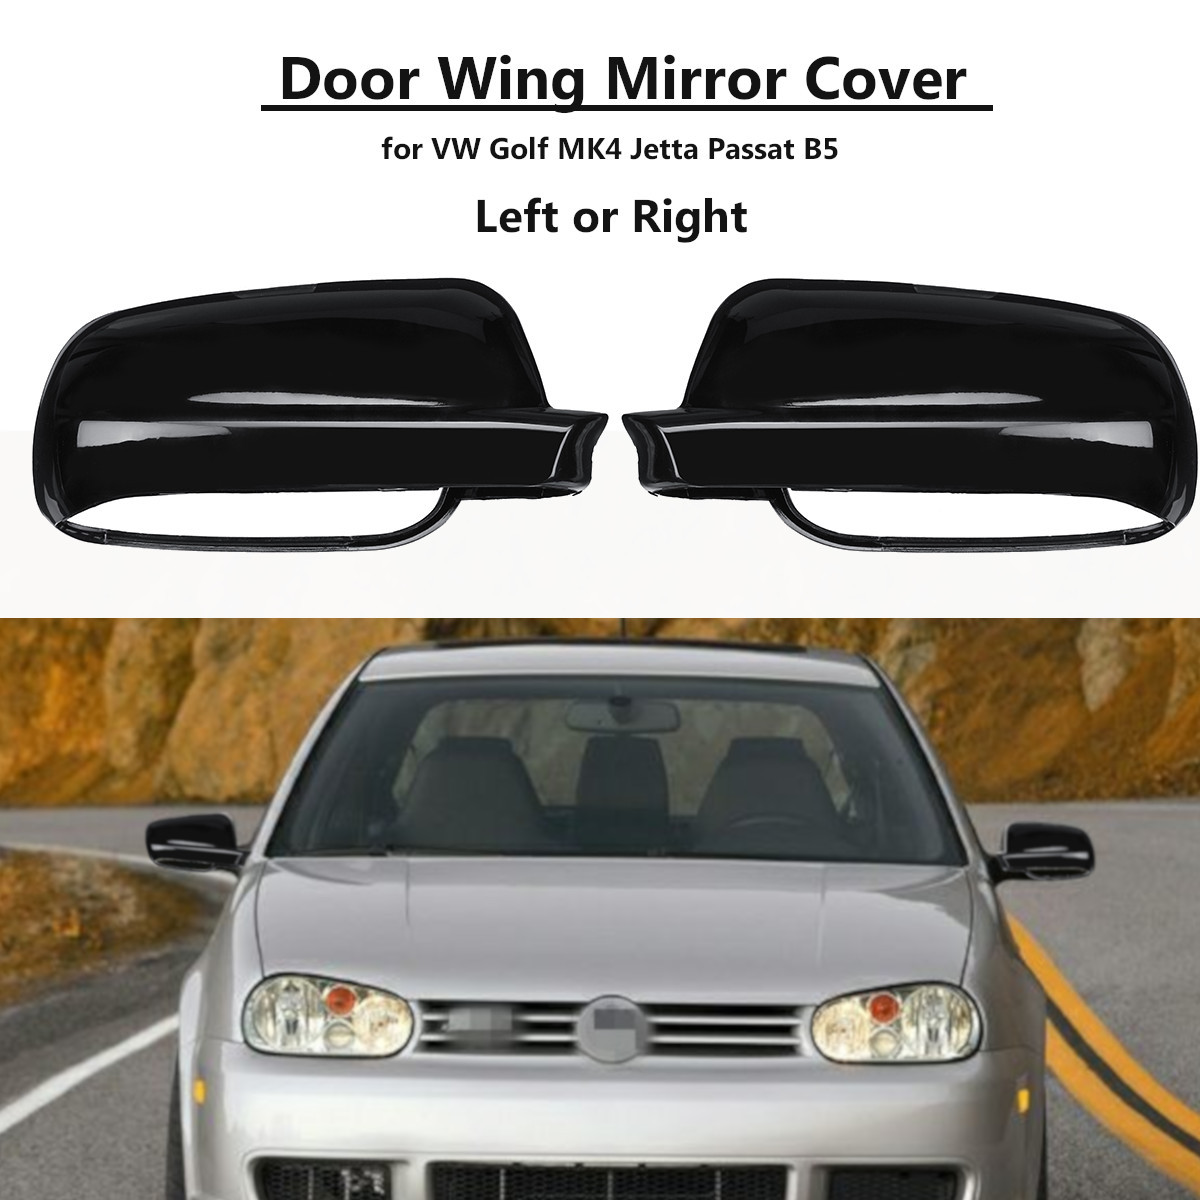 Gloss Black Wing Mirror Cover Cup Left/Right For VW Jetta Bora Golf Mk4 Polo Passat B5 1996 1999 2000 2001 2002 2003 2004|Side Mirror Folding Kit| |  - title=